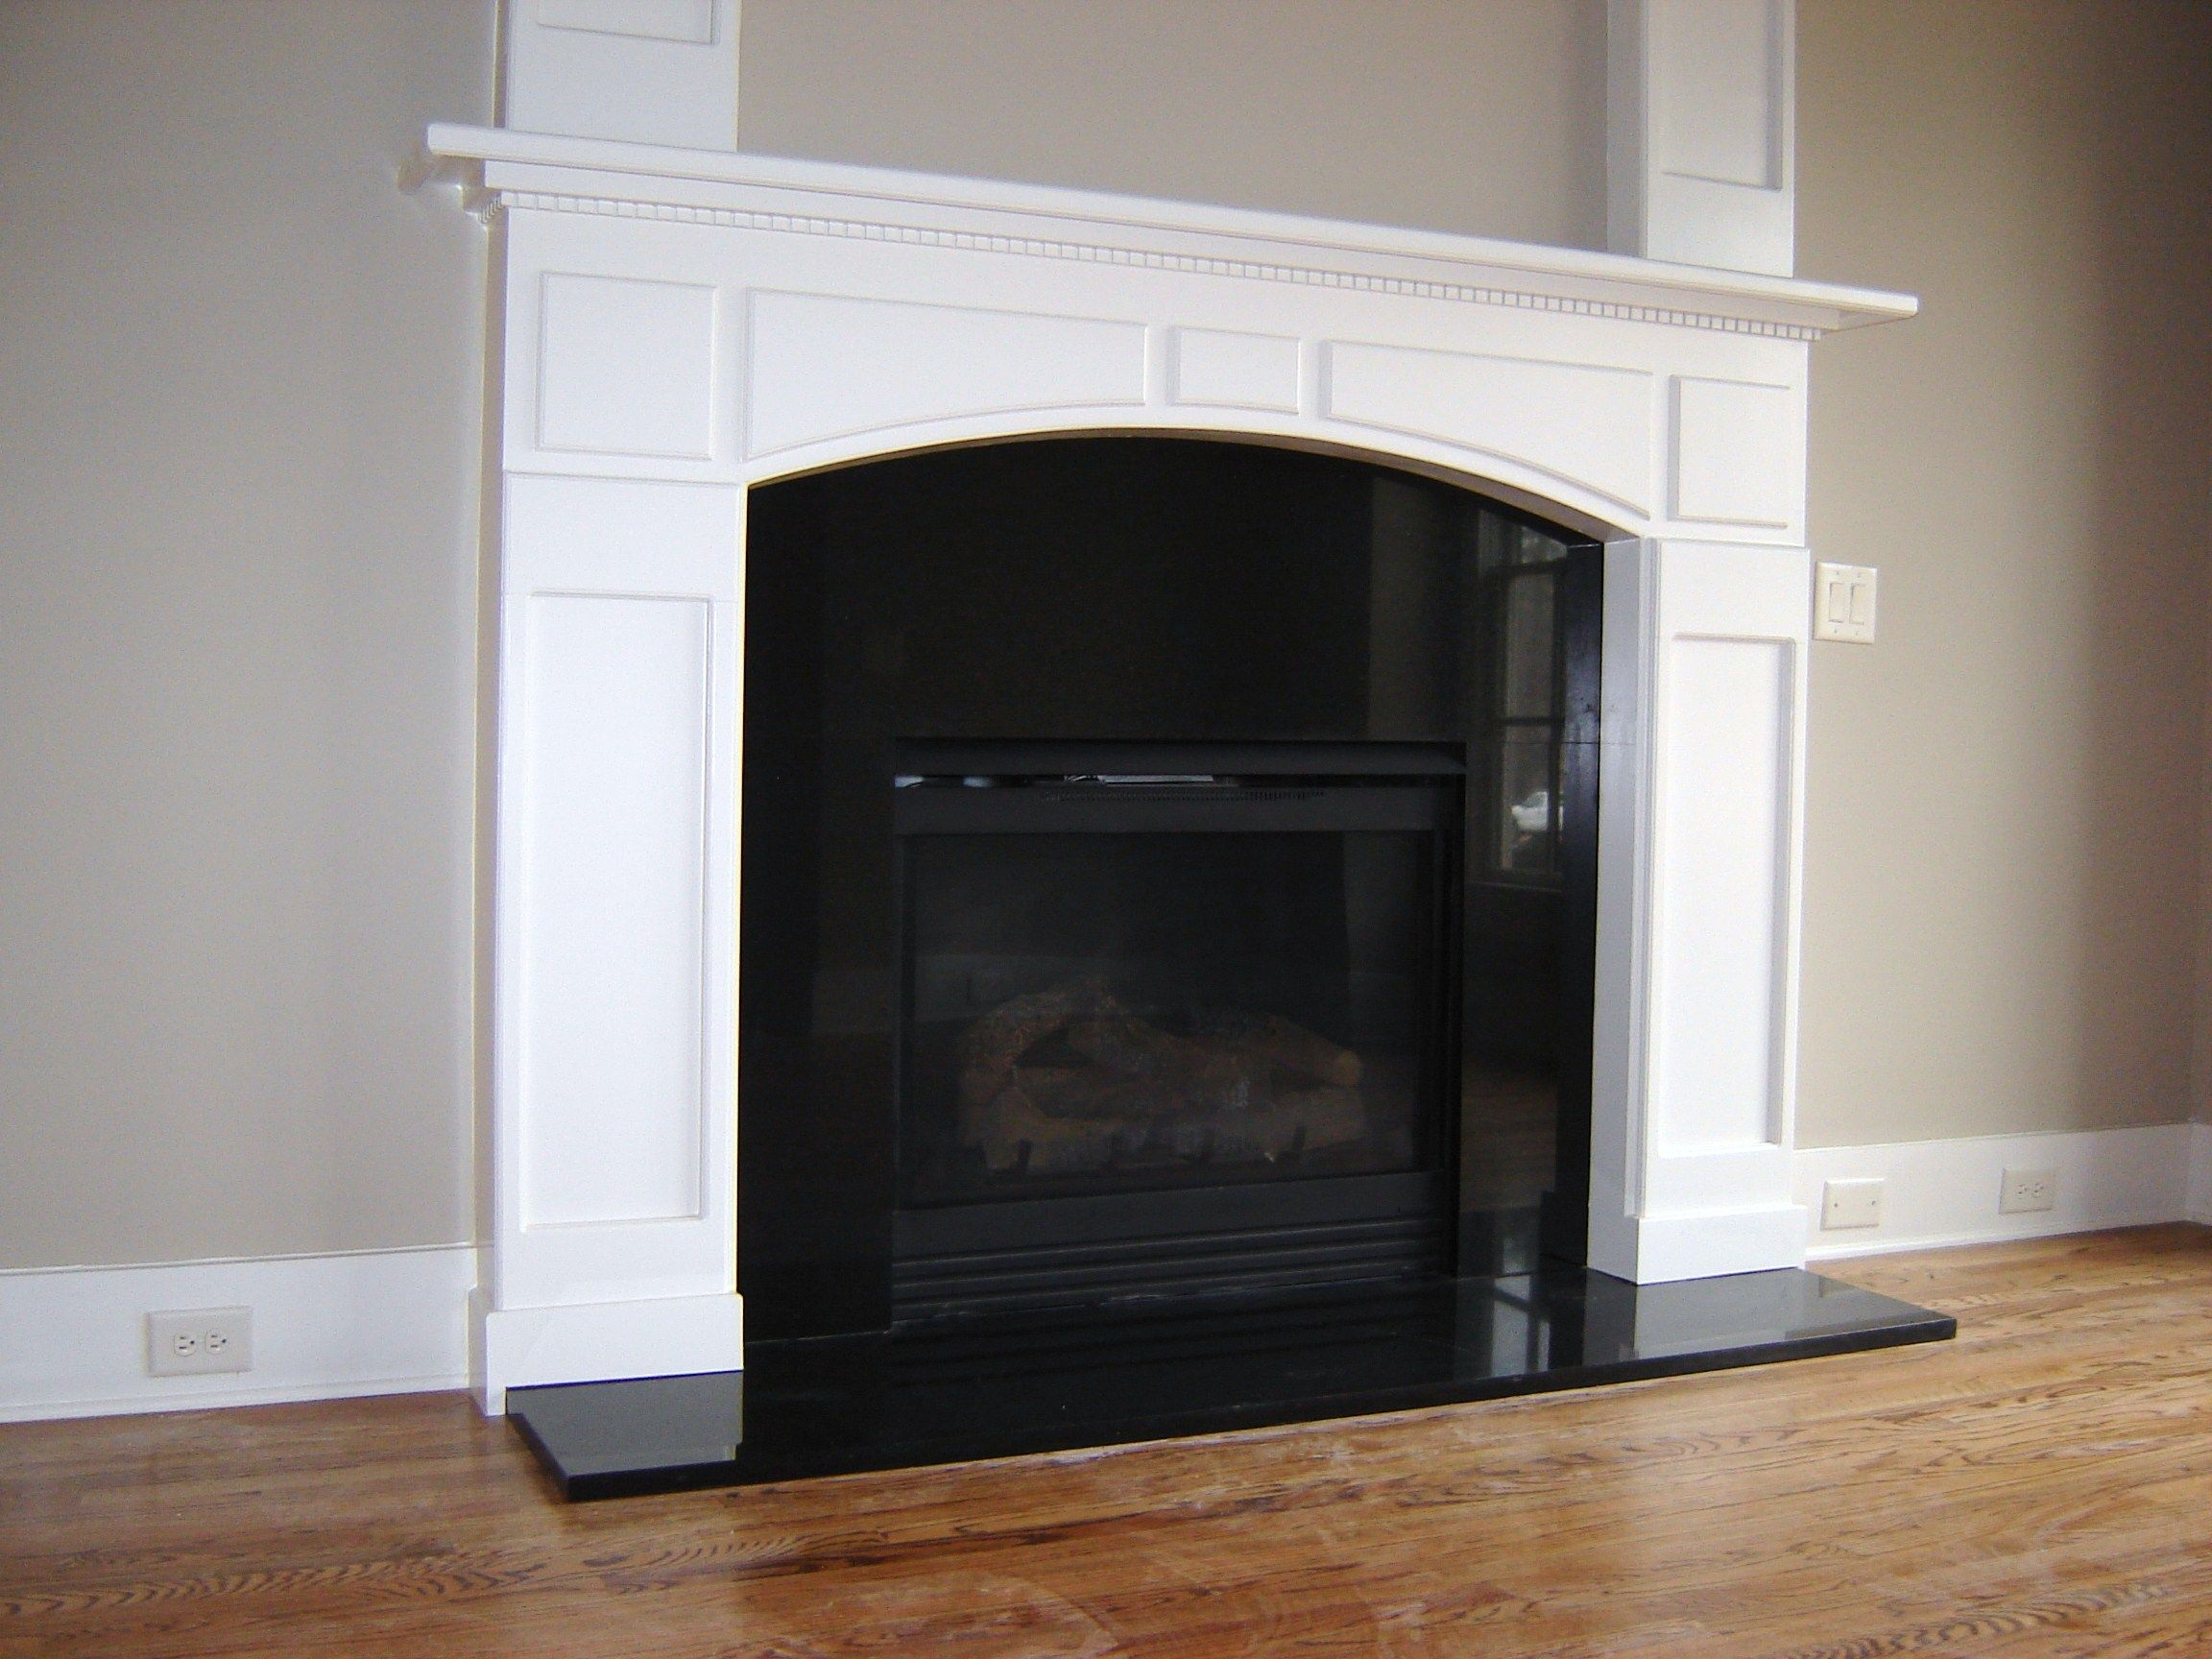 Fireplace hearth and surround Absolute Black granite